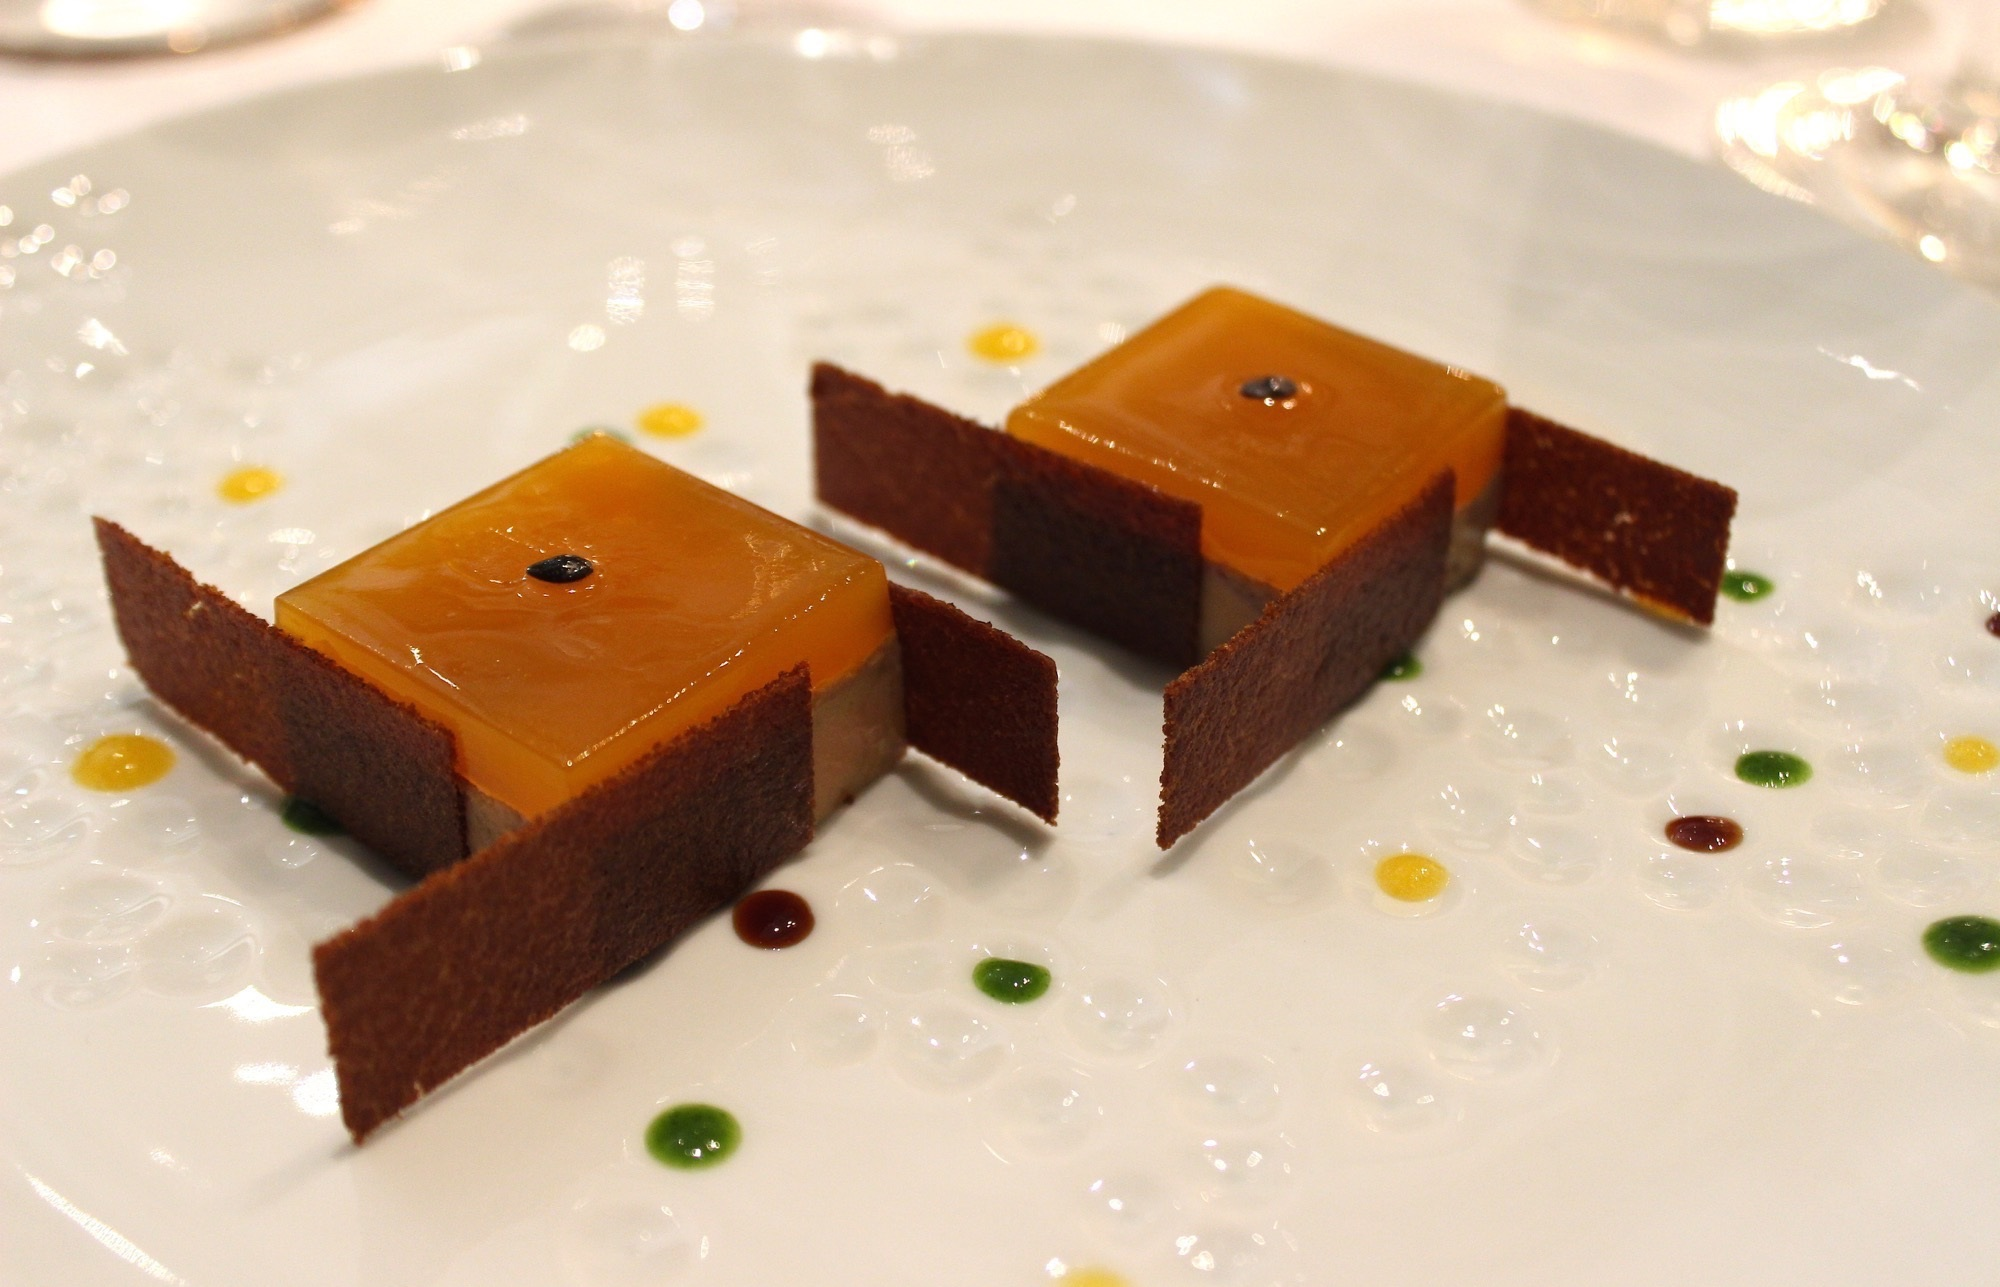 Spicy Foie Gras with Passion Fruit Jelly brewed with Coffee